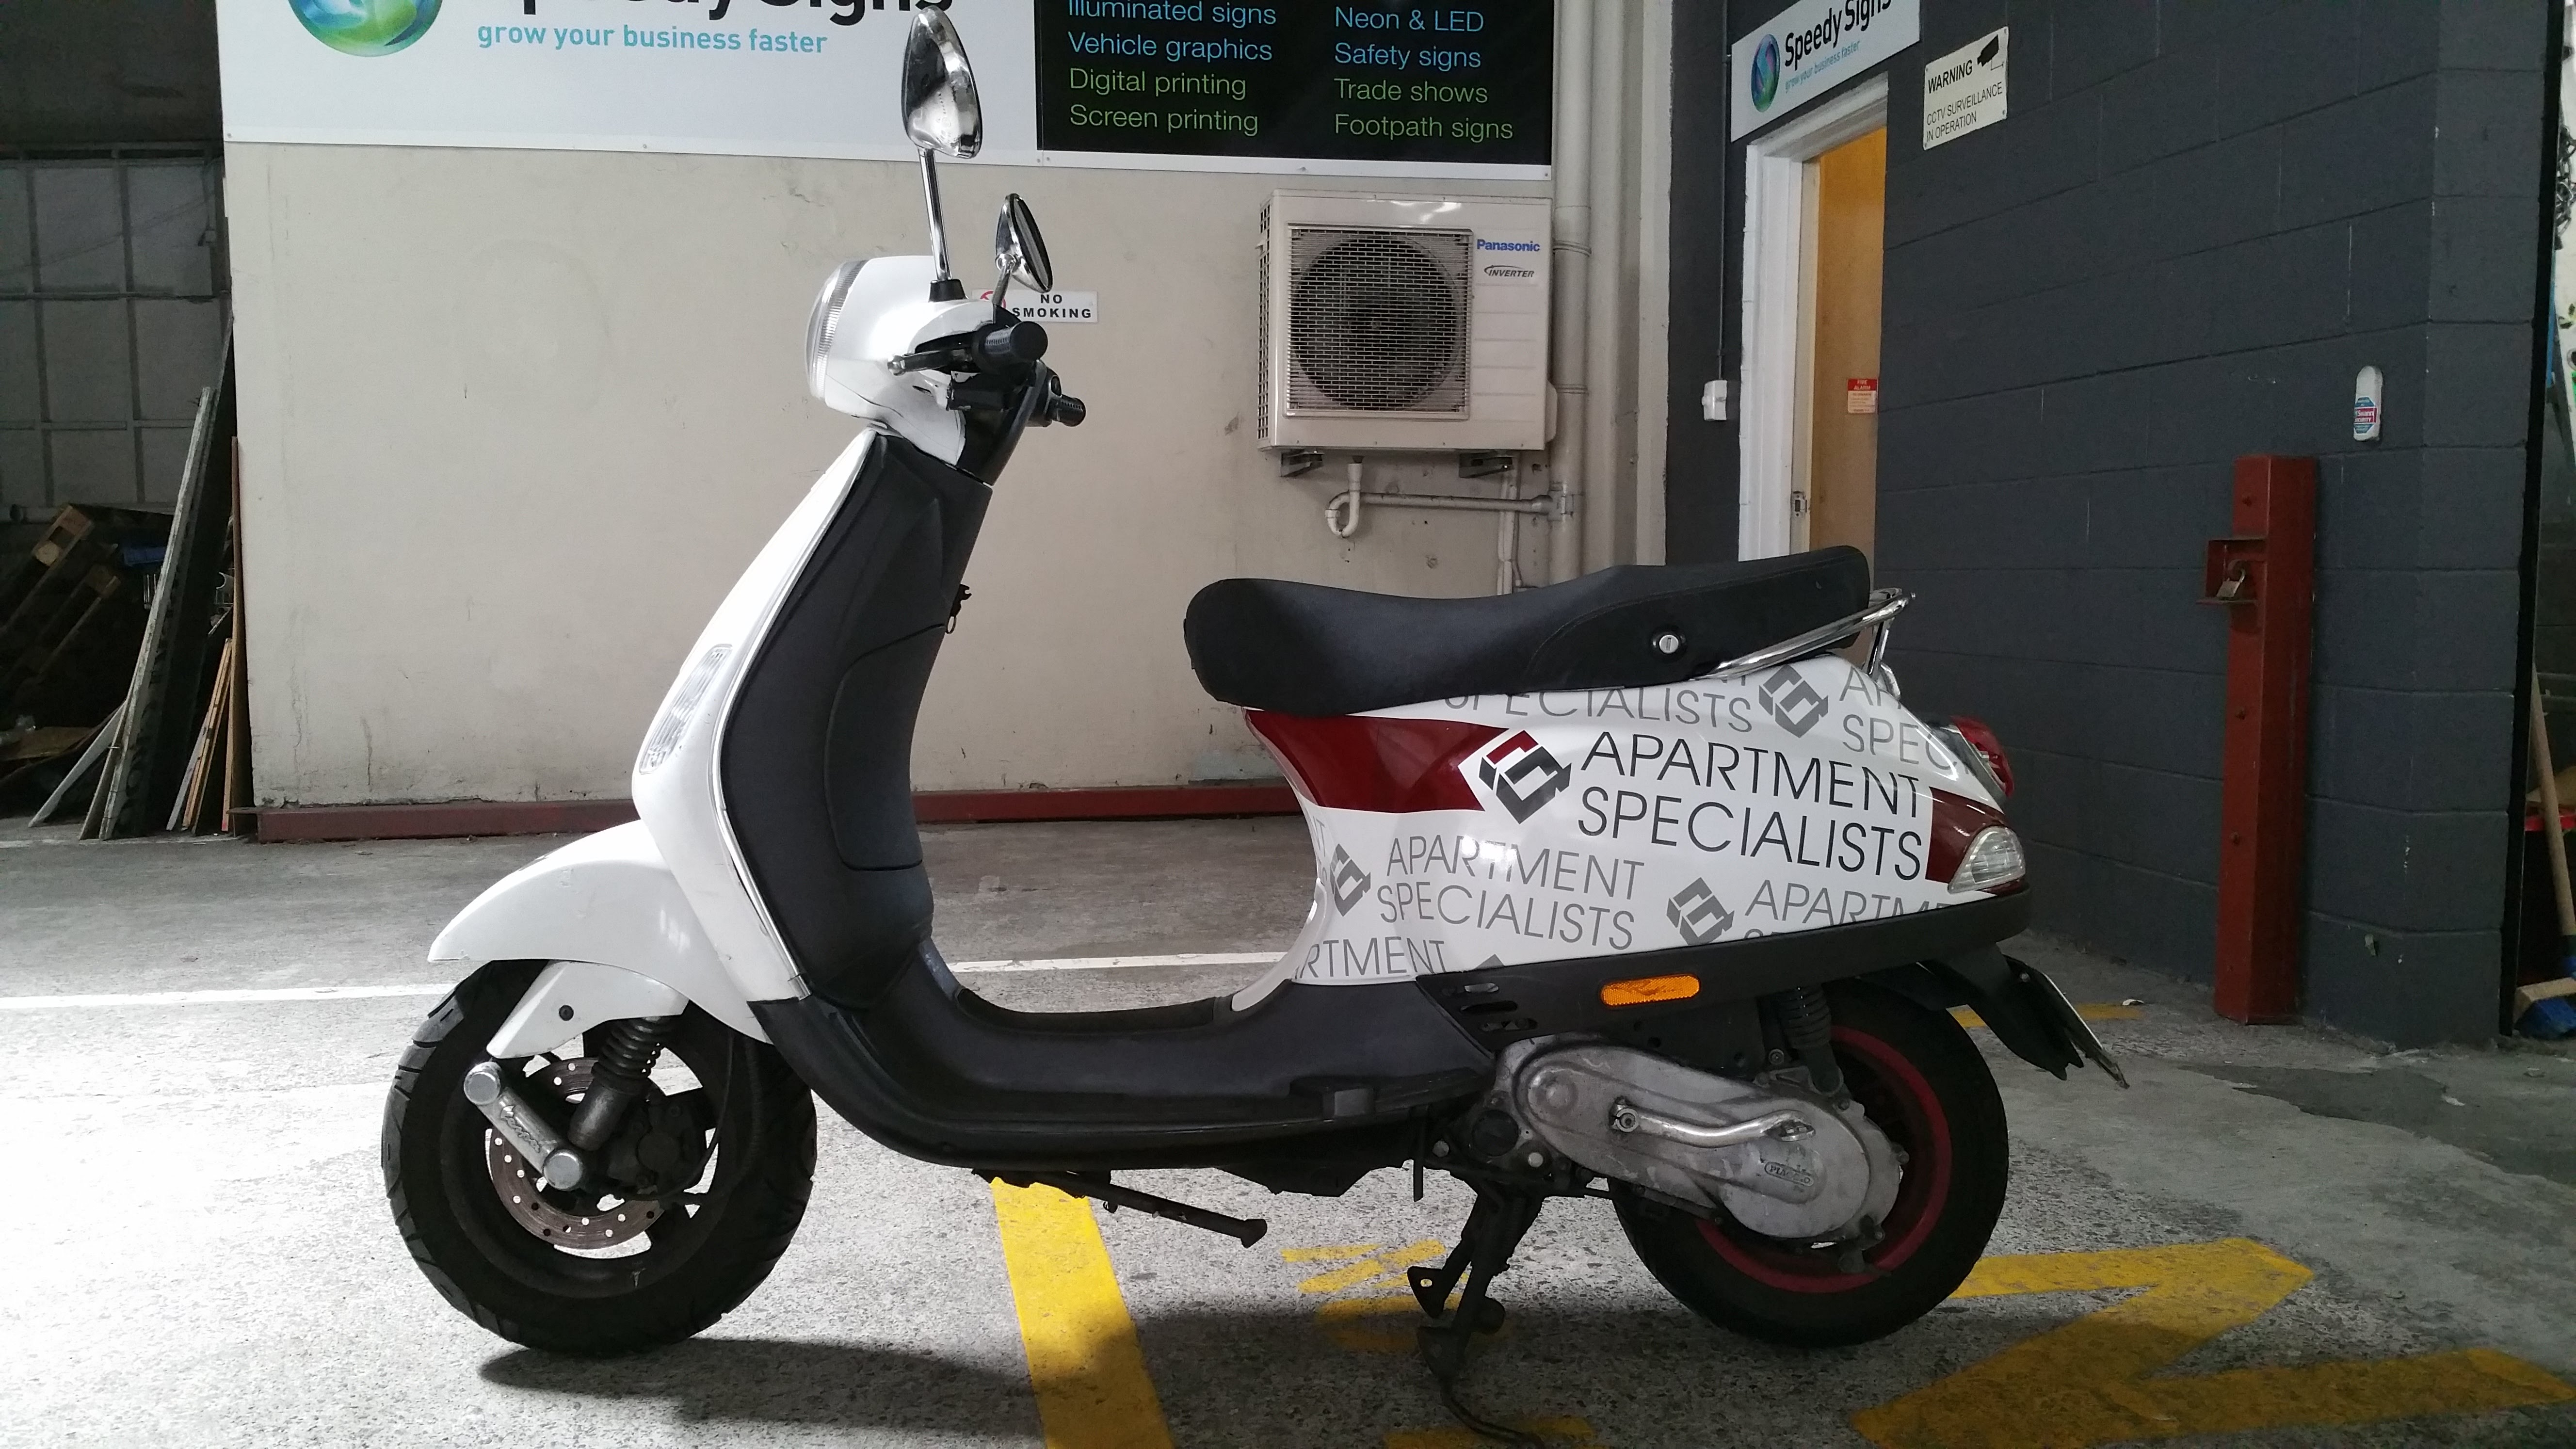 Scooter Wrap and Signage